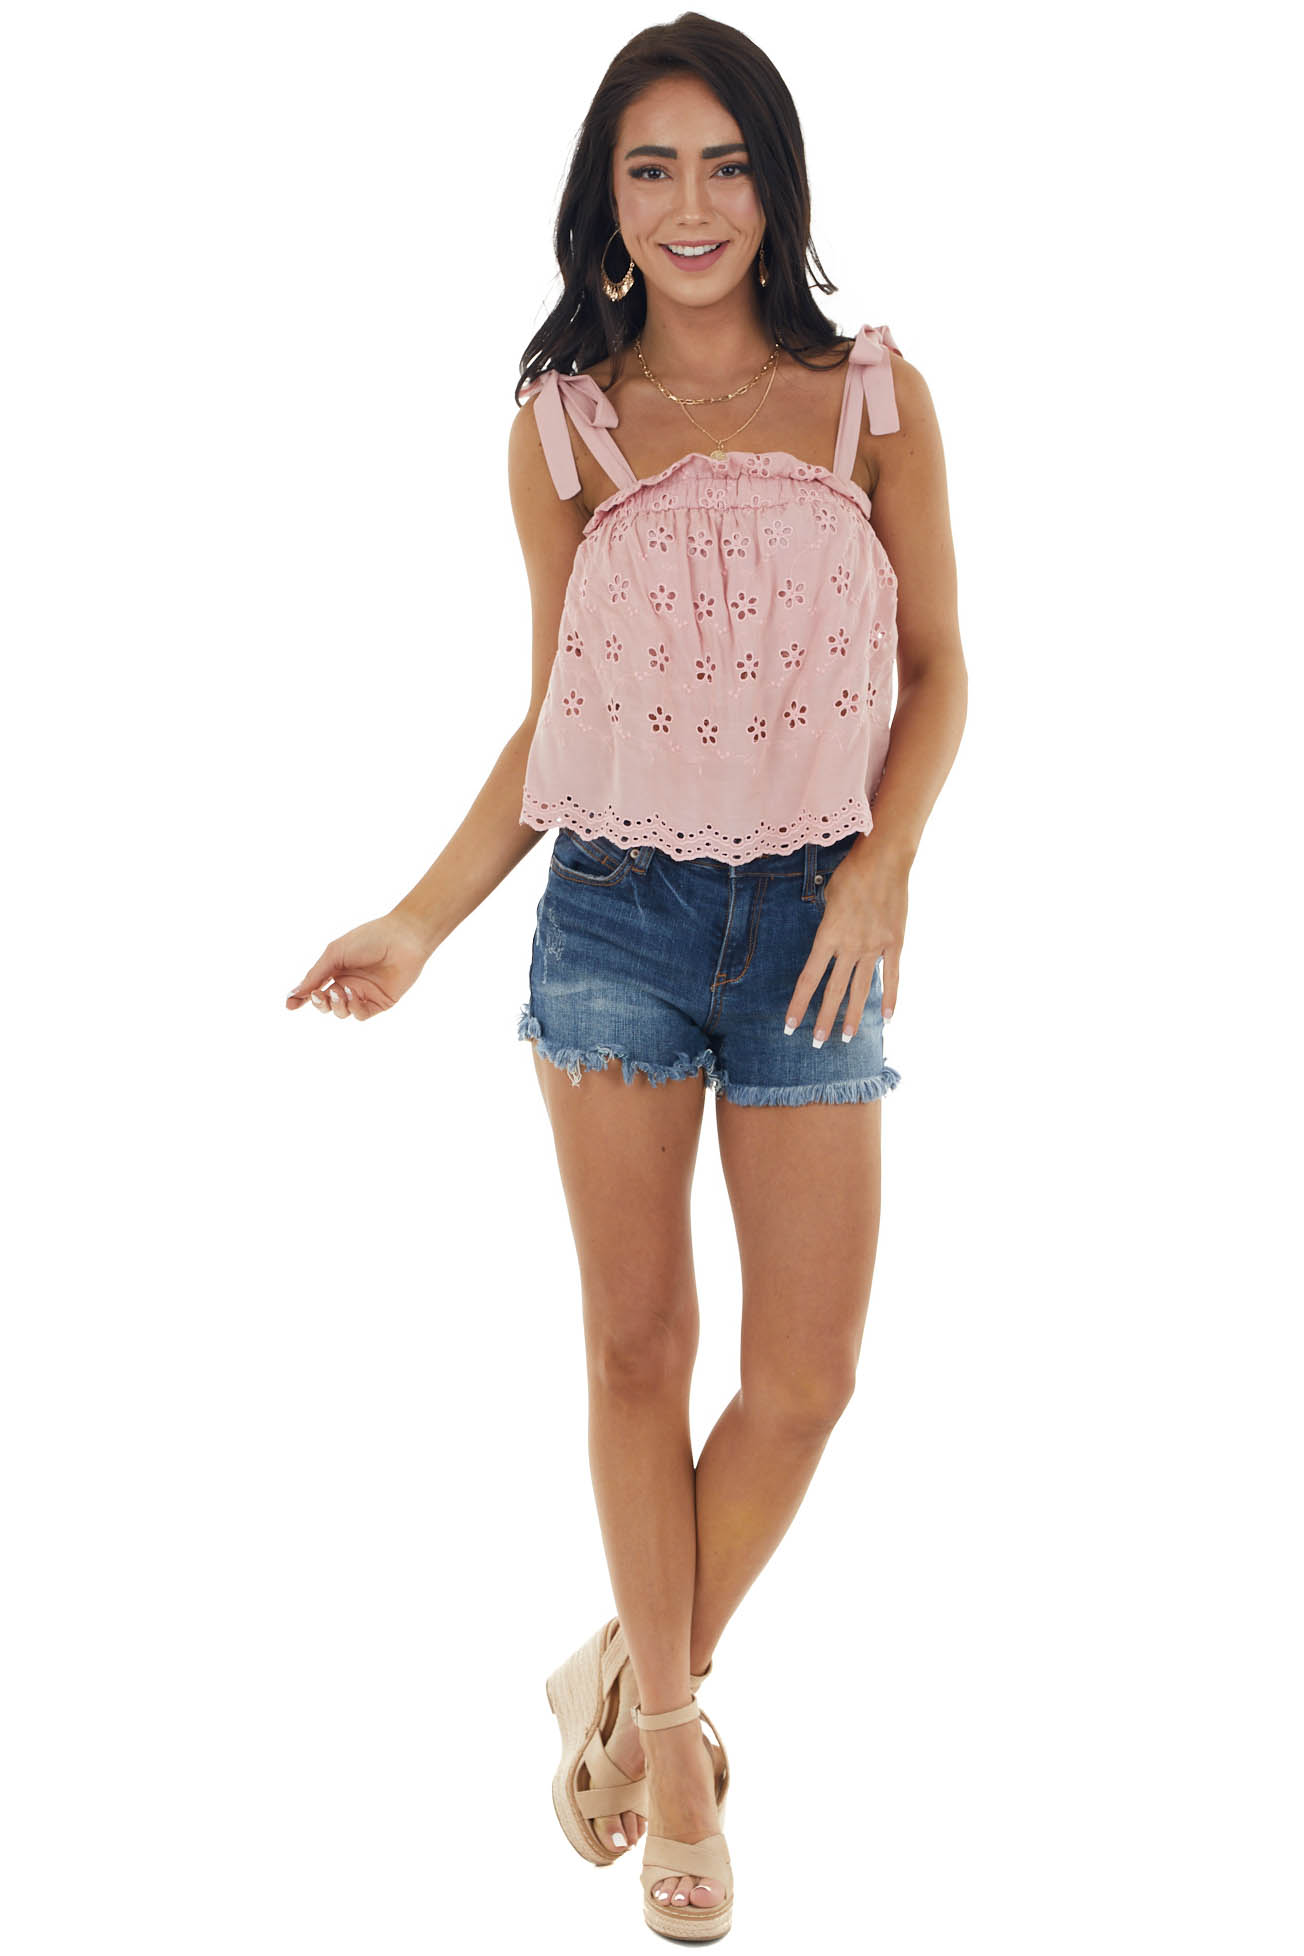 Dusty Pink Floral Eyelet Lace Sleeveless Top with Strap Ties